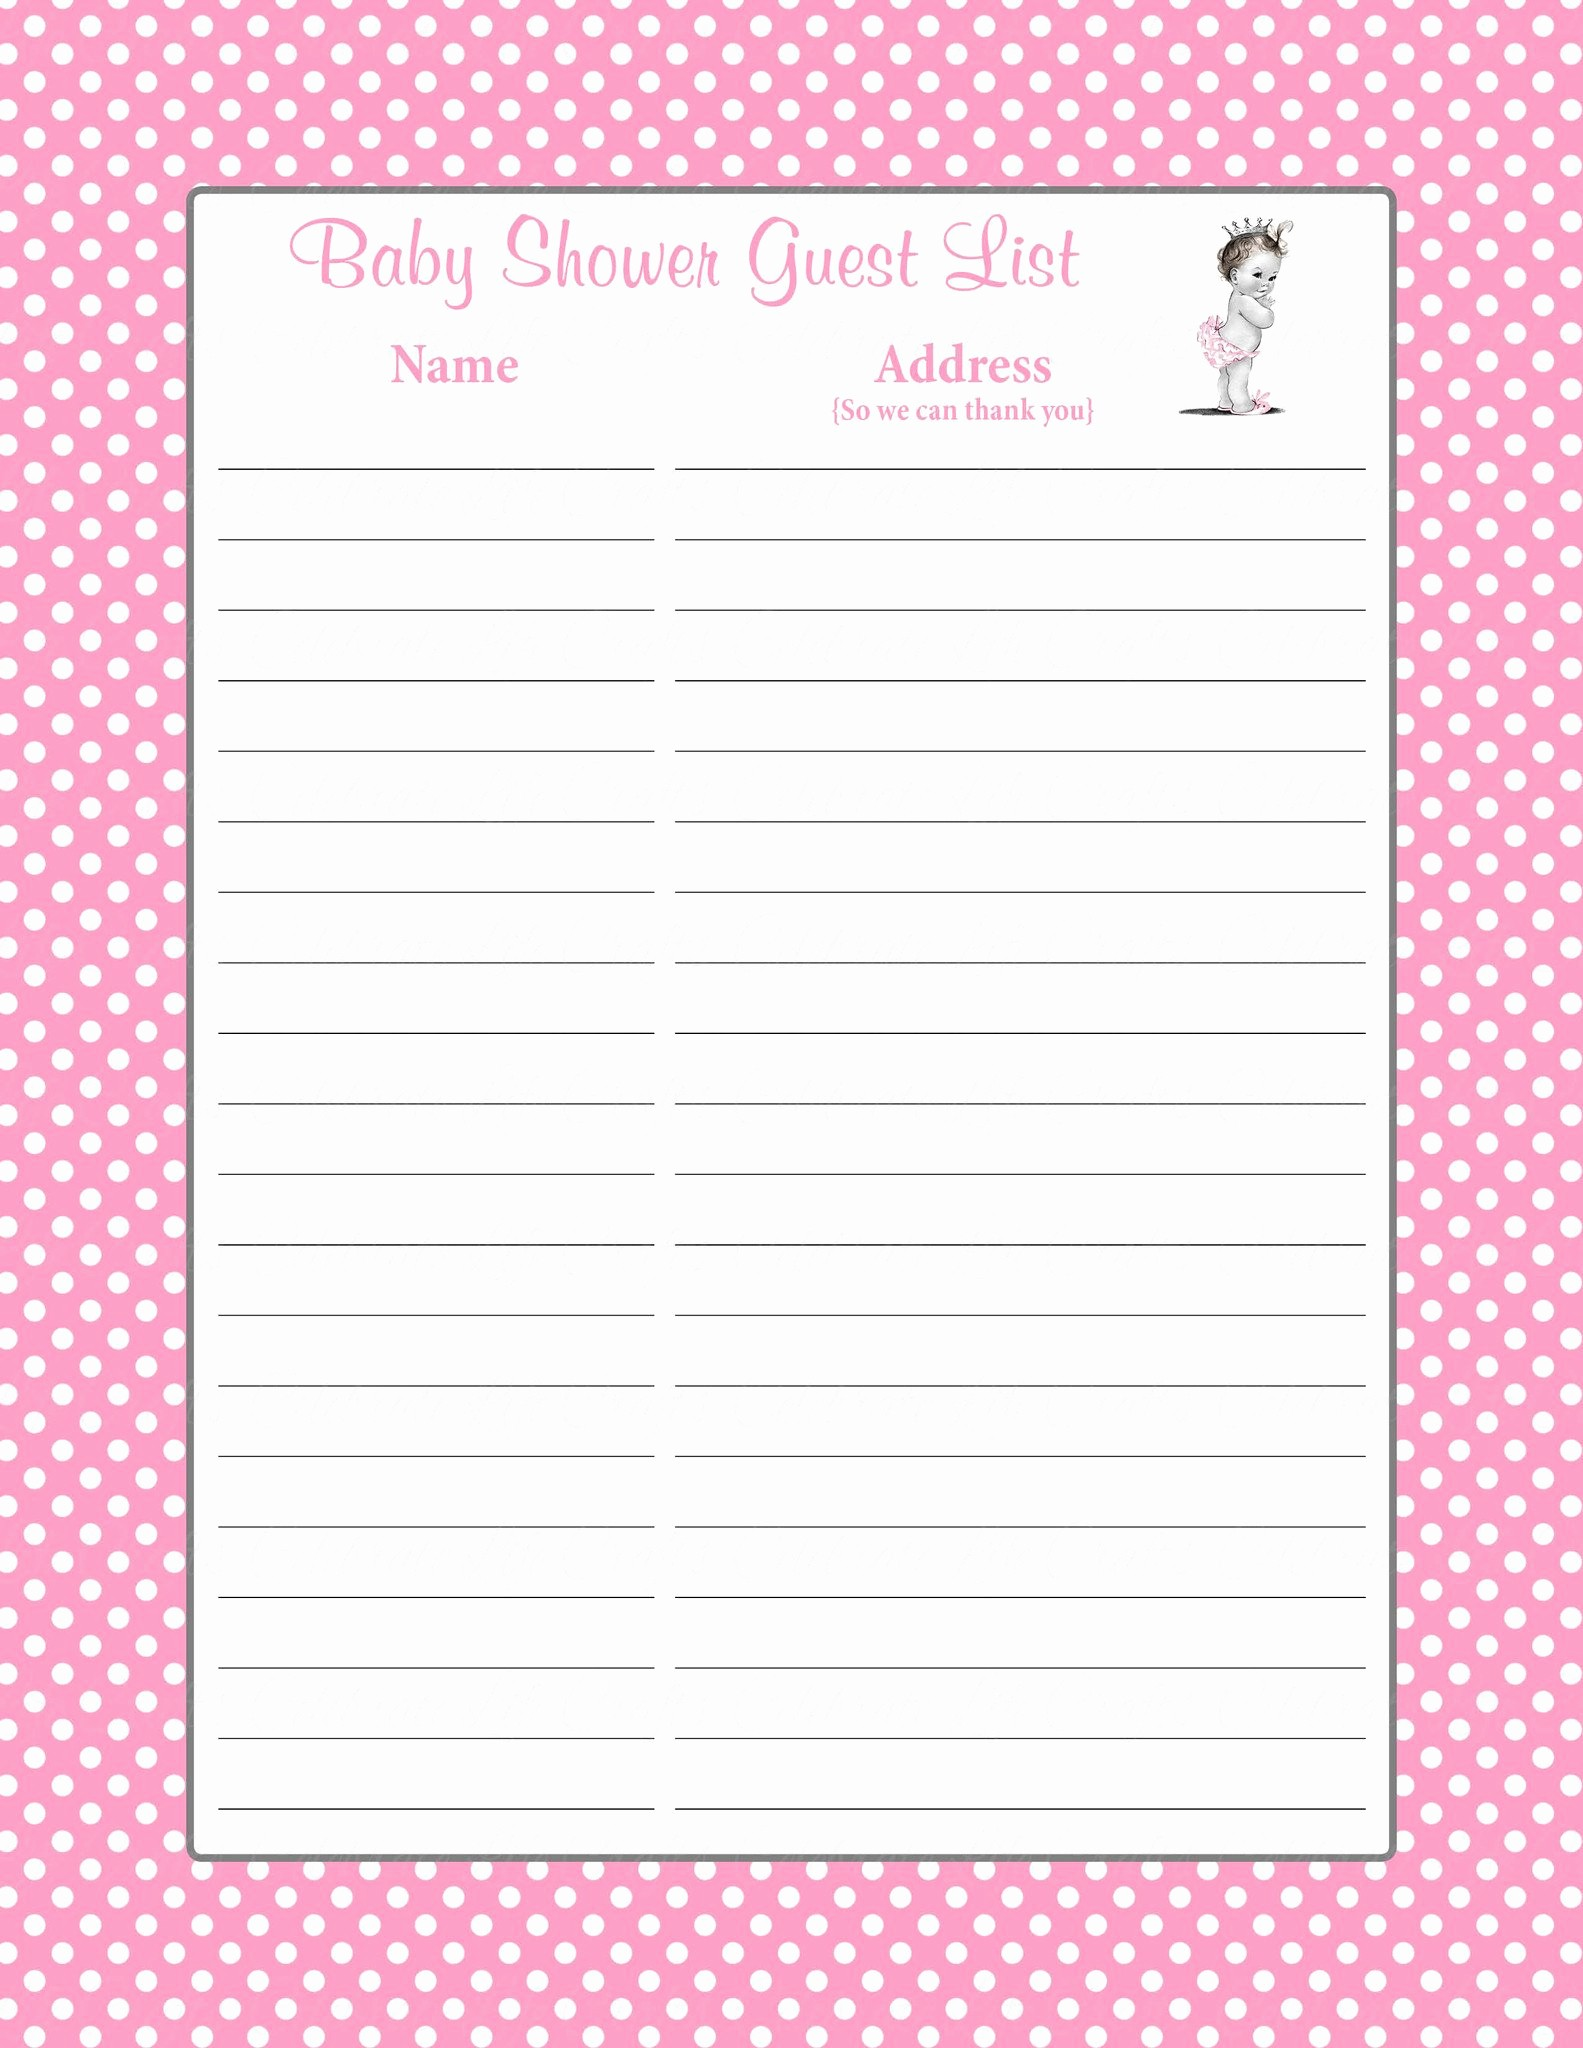 Printable Baby Shower Guest List Awesome Printable Baby Shower Guest List Portablegasgrillweber